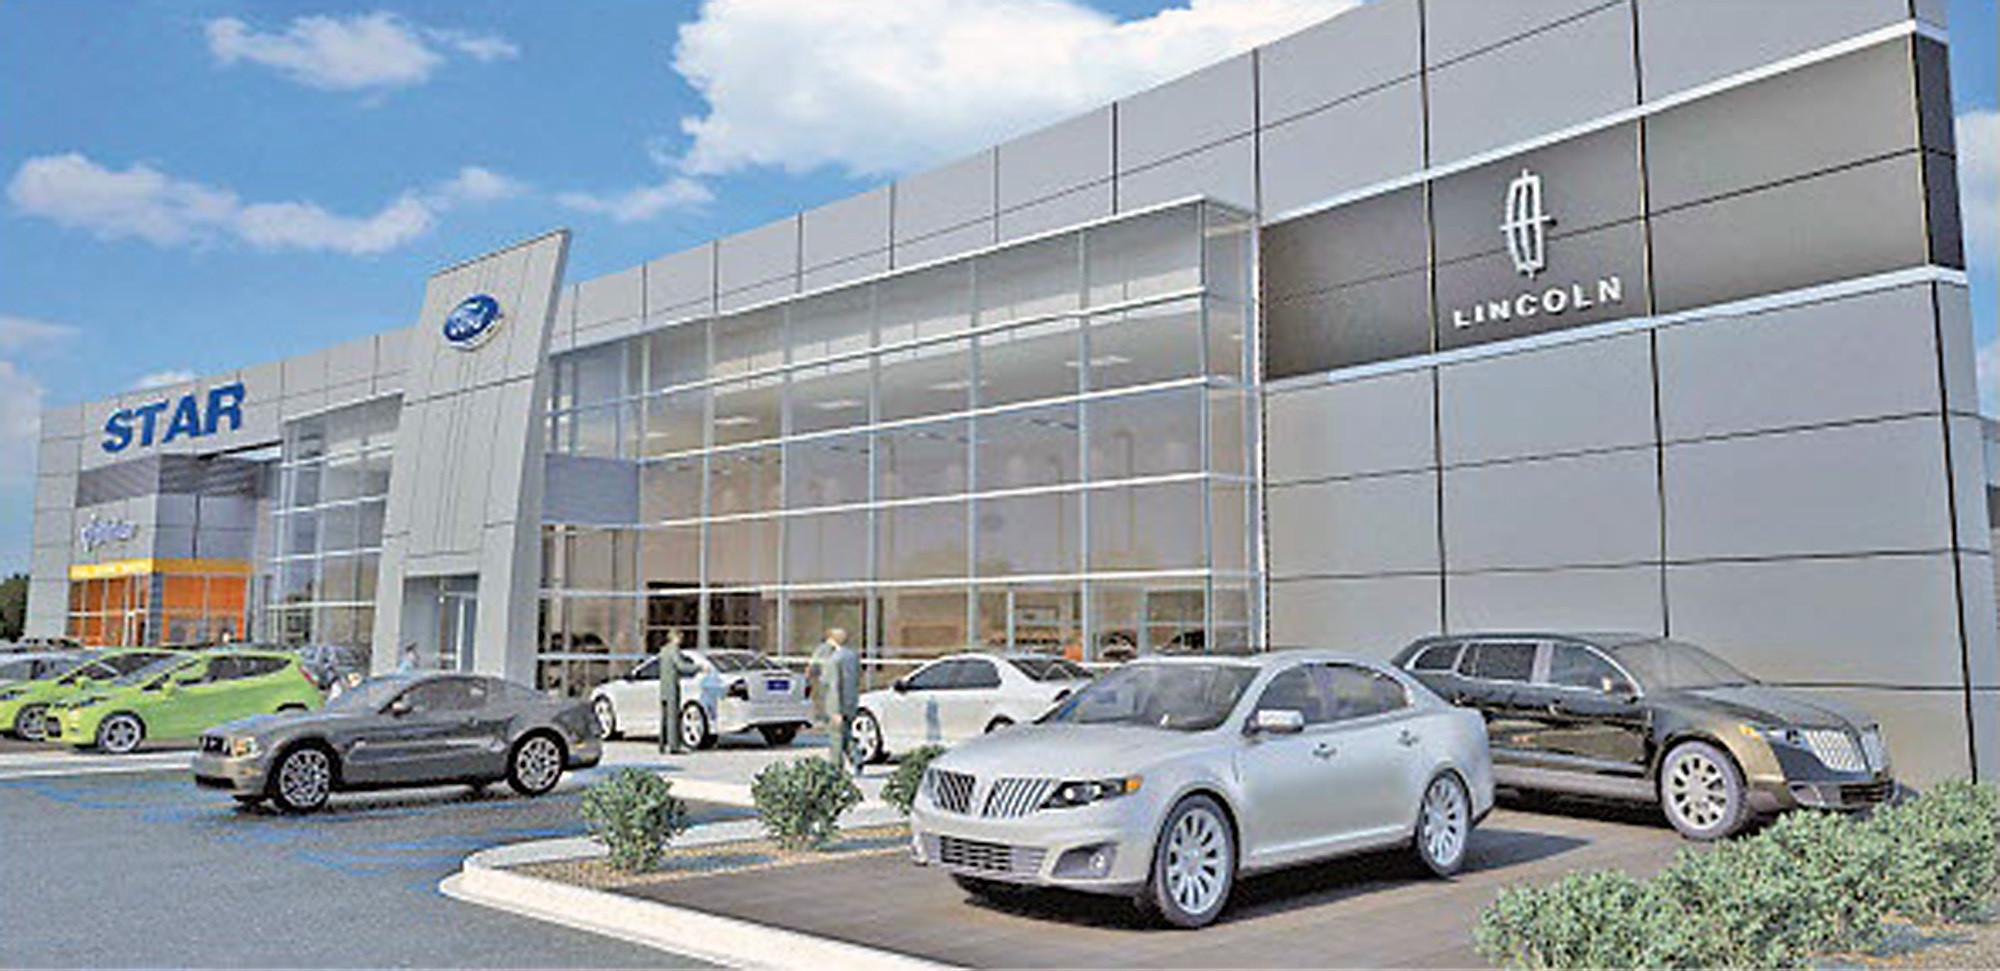 star ford lincoln expected to build new showroom along. Black Bedroom Furniture Sets. Home Design Ideas